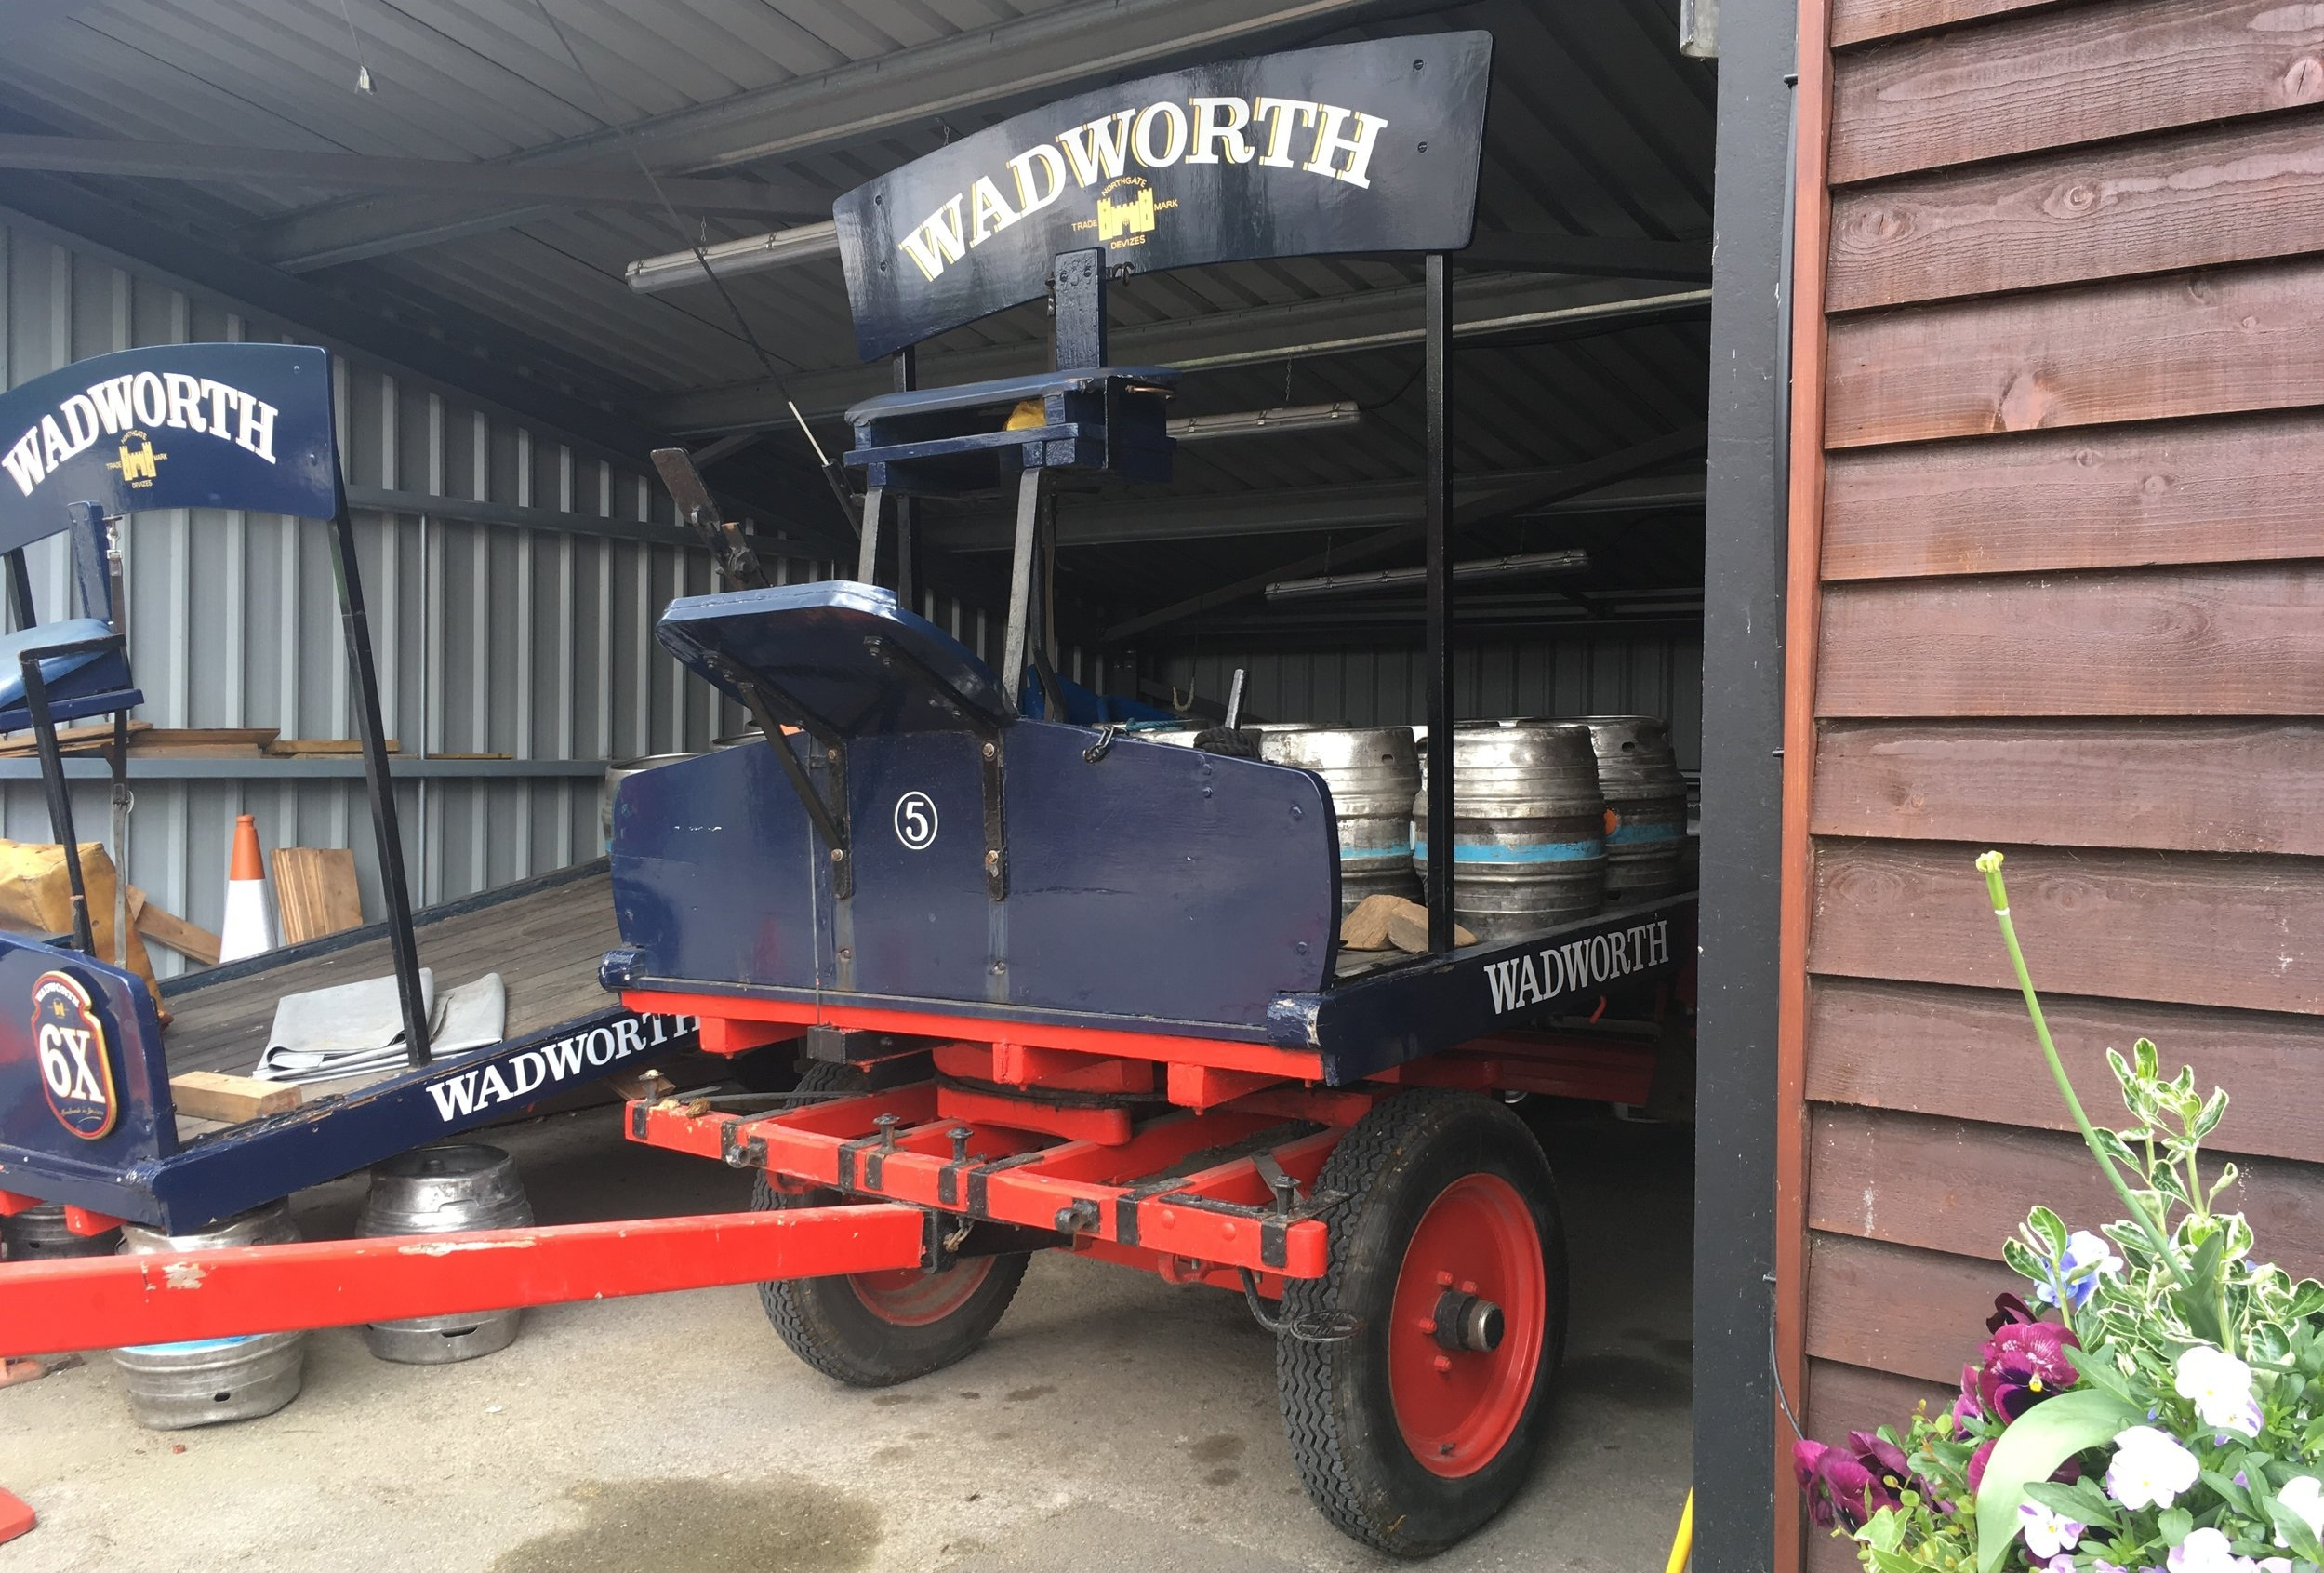 shire horse-drawn Dray still used at Wadworth's to deliver its beers around the town